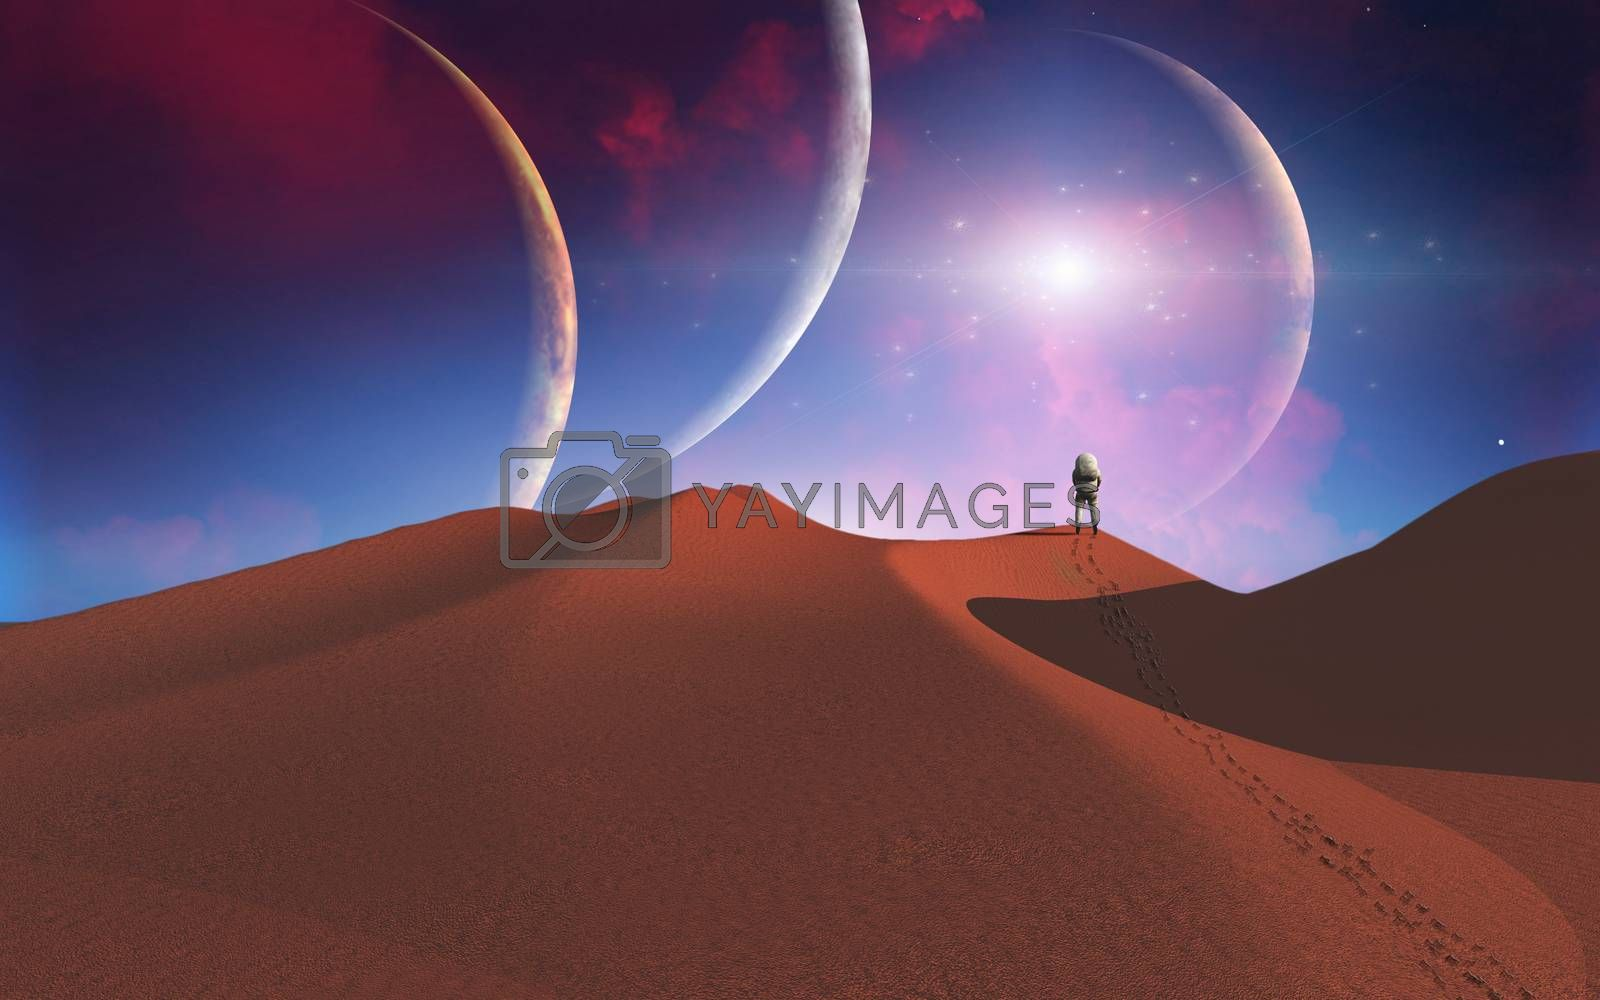 Astronaut on another red planet. 3D rendering